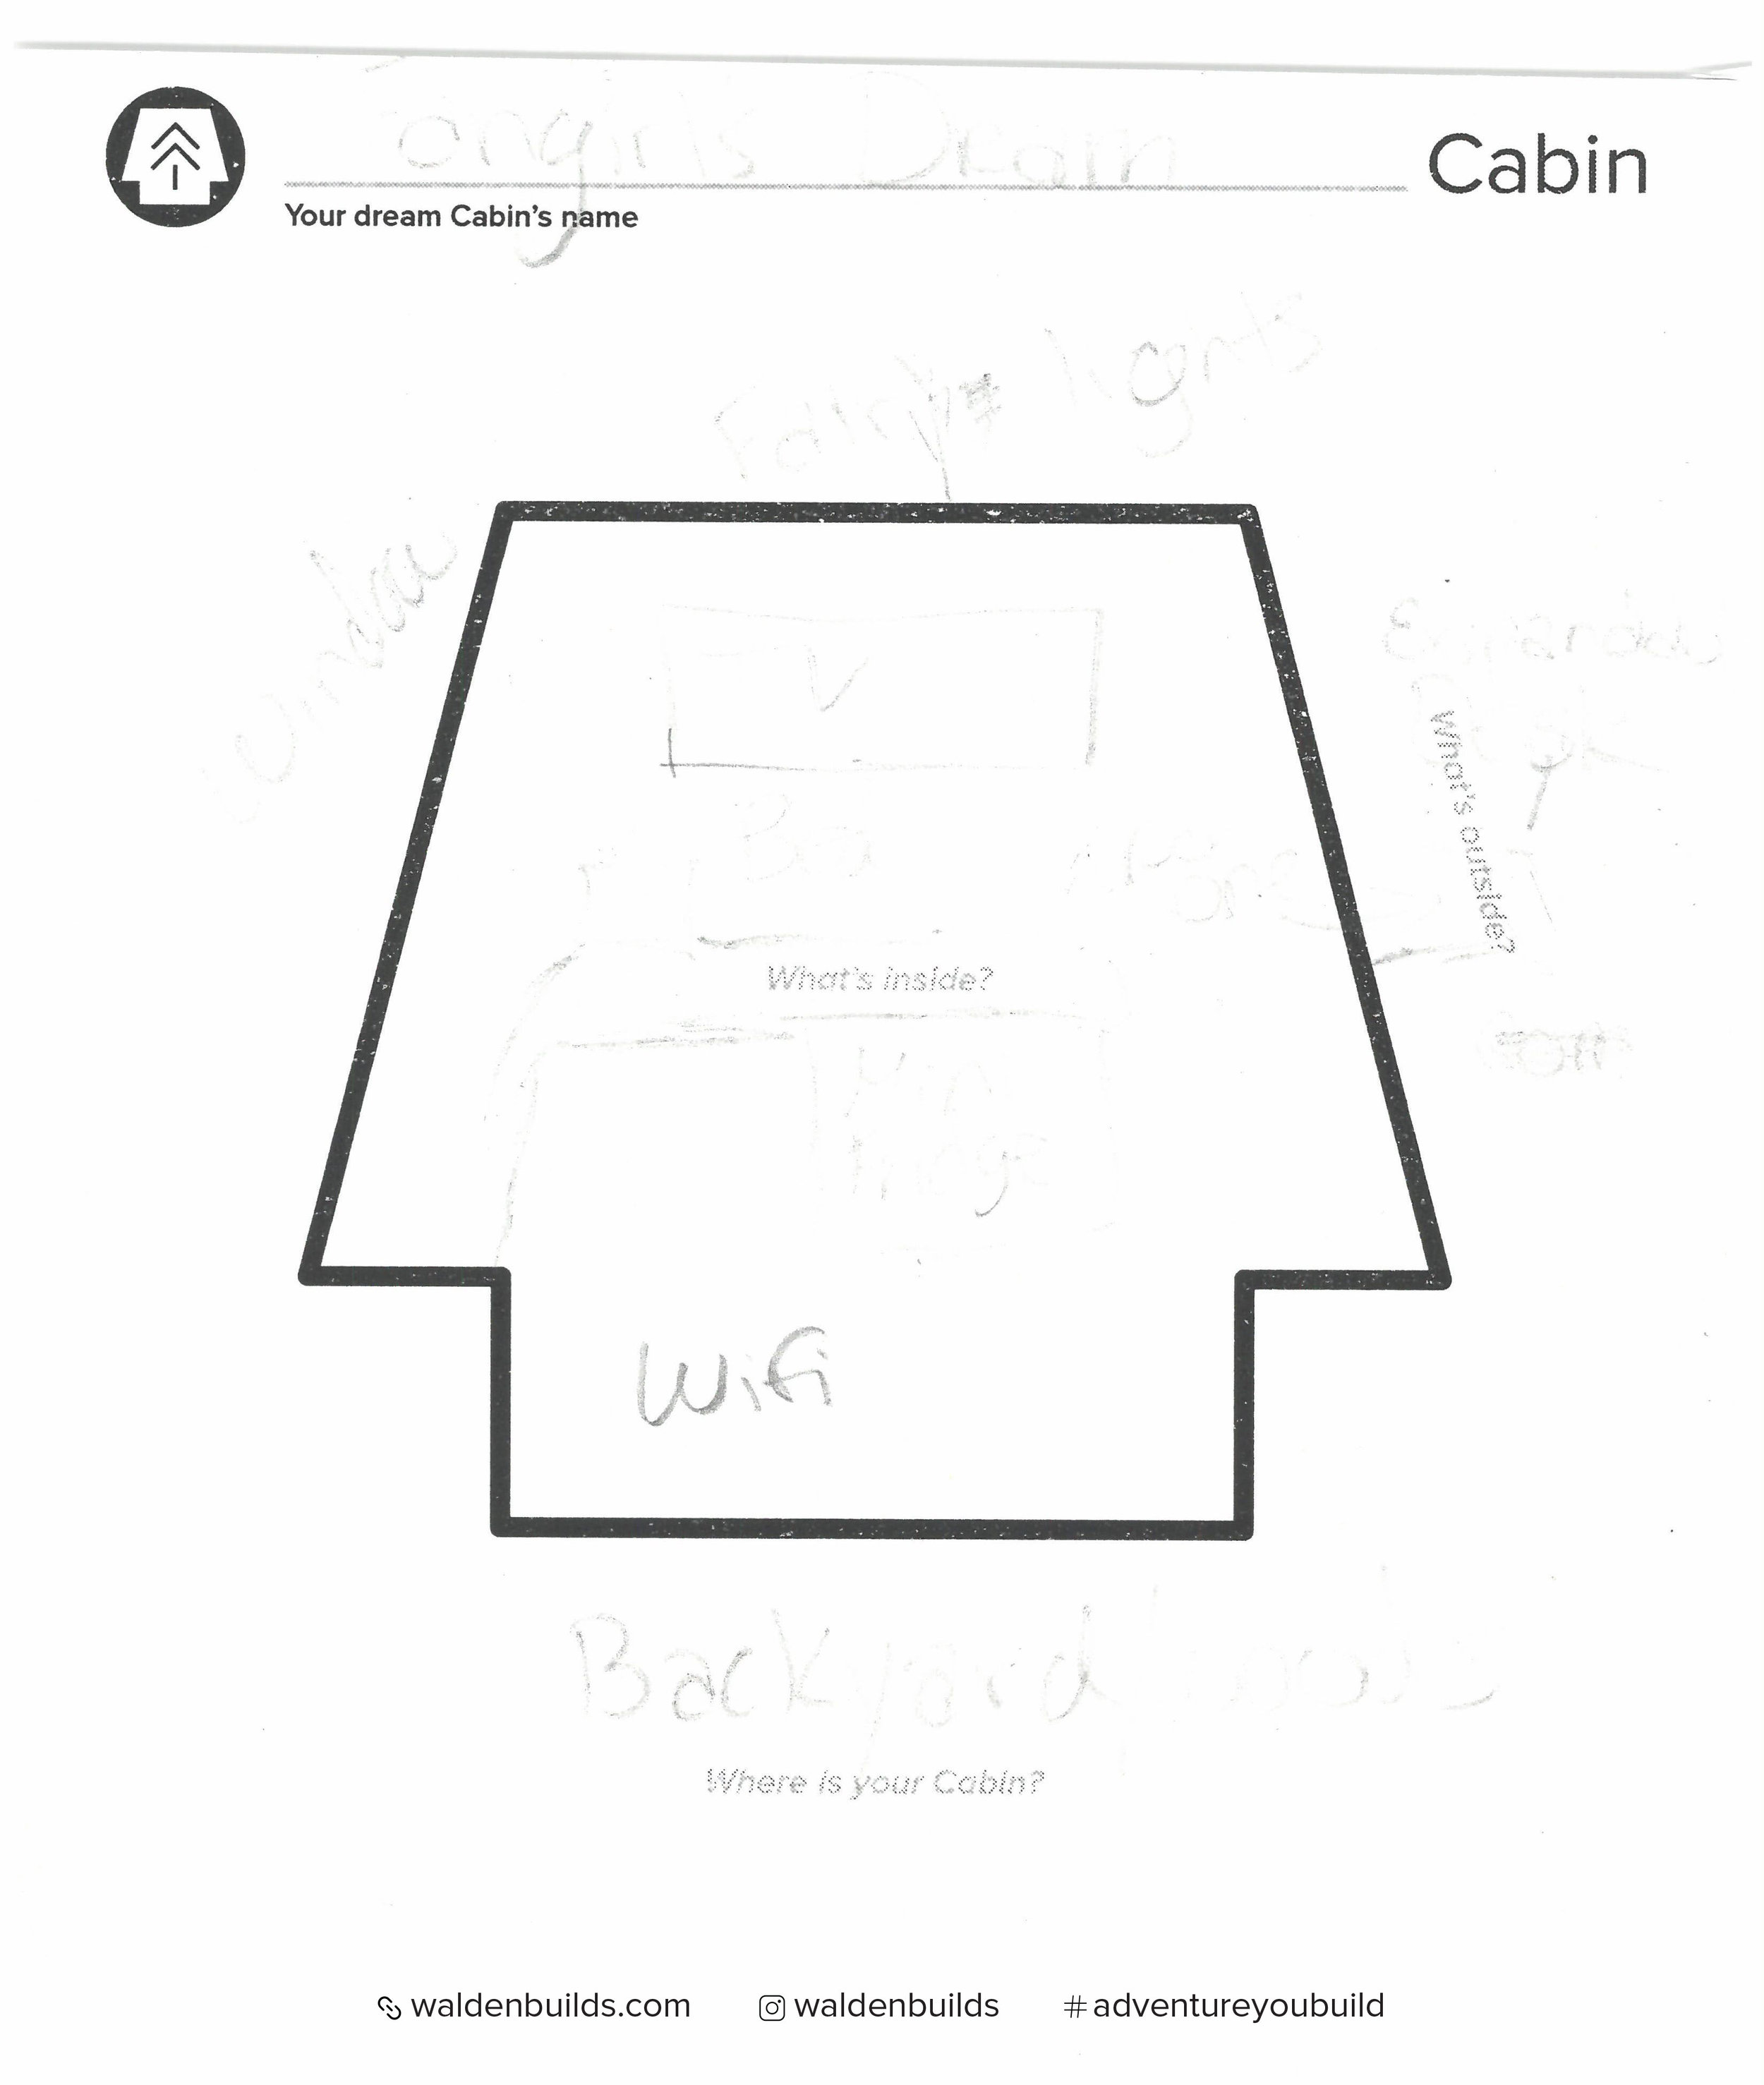 Open-cabin-design-84.jpg